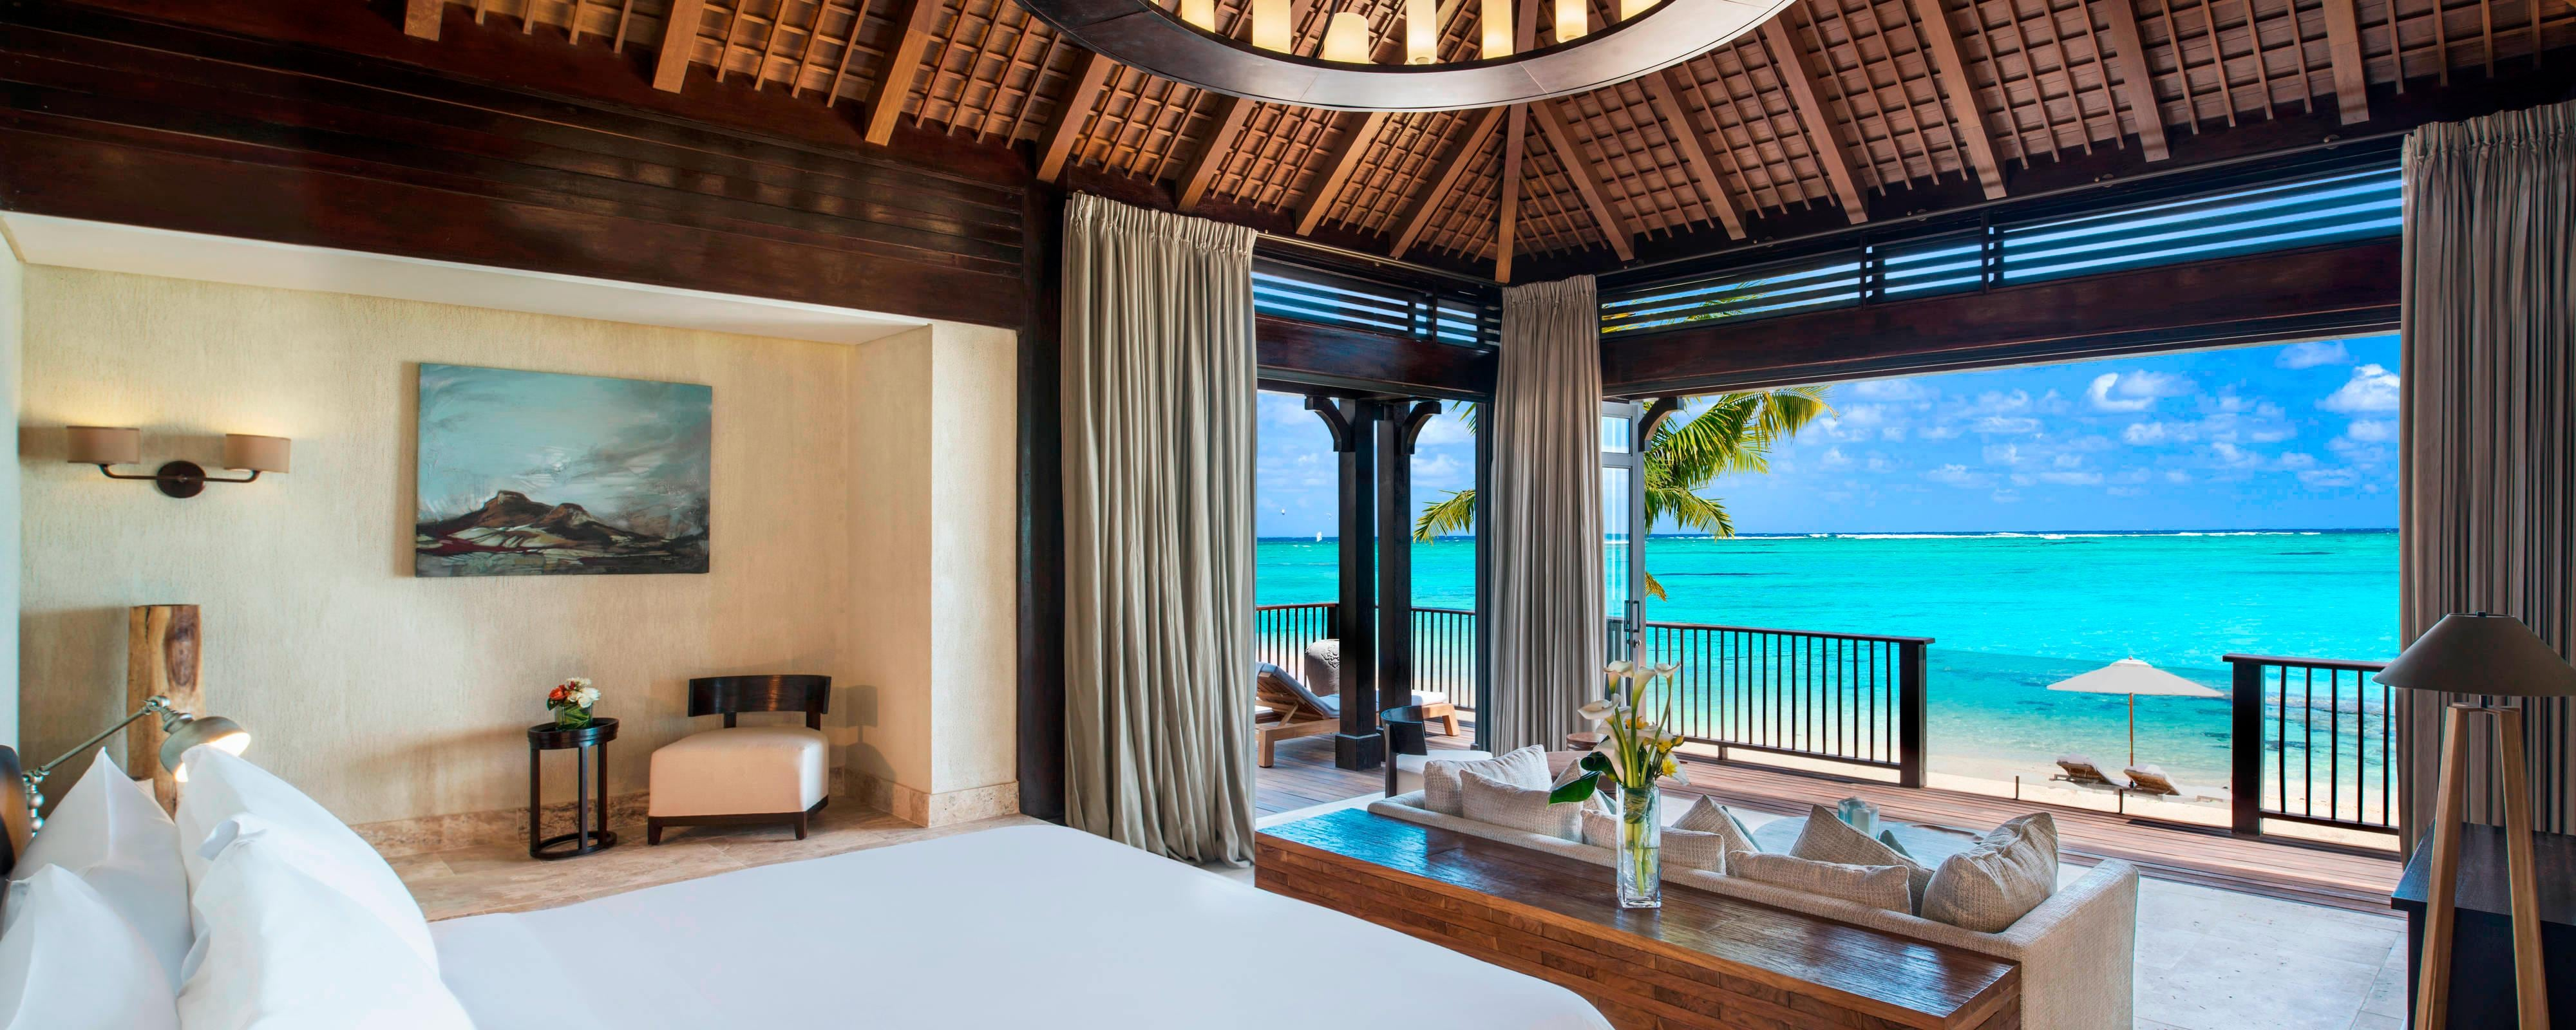 The St. Regis Villa Bedroom with View on the Lagoon